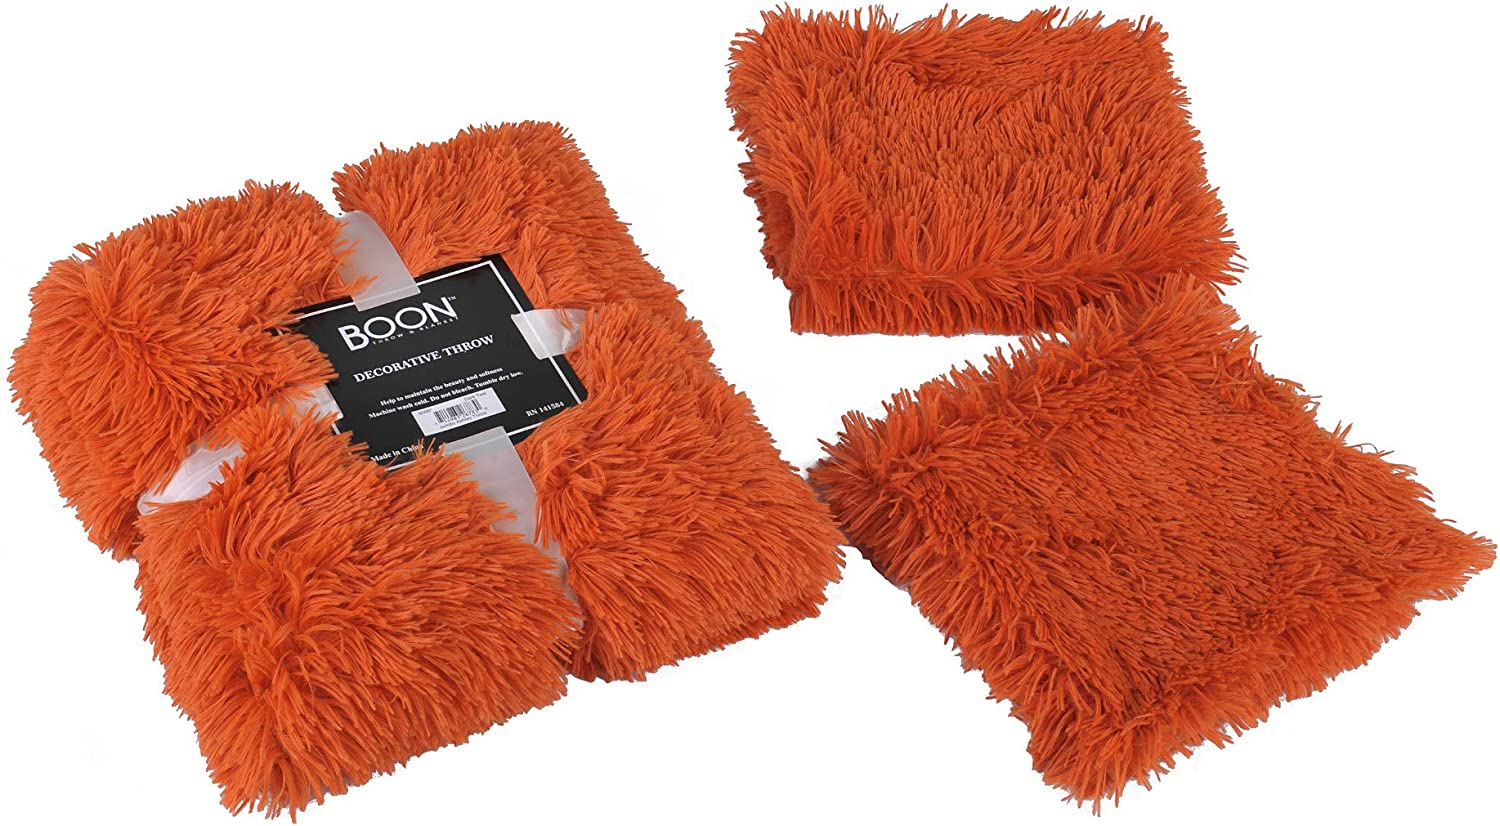 Max 60% OFF Home Soft Things Shaggy Throw Pillow Shell Burnt Fashionable Orange Combo